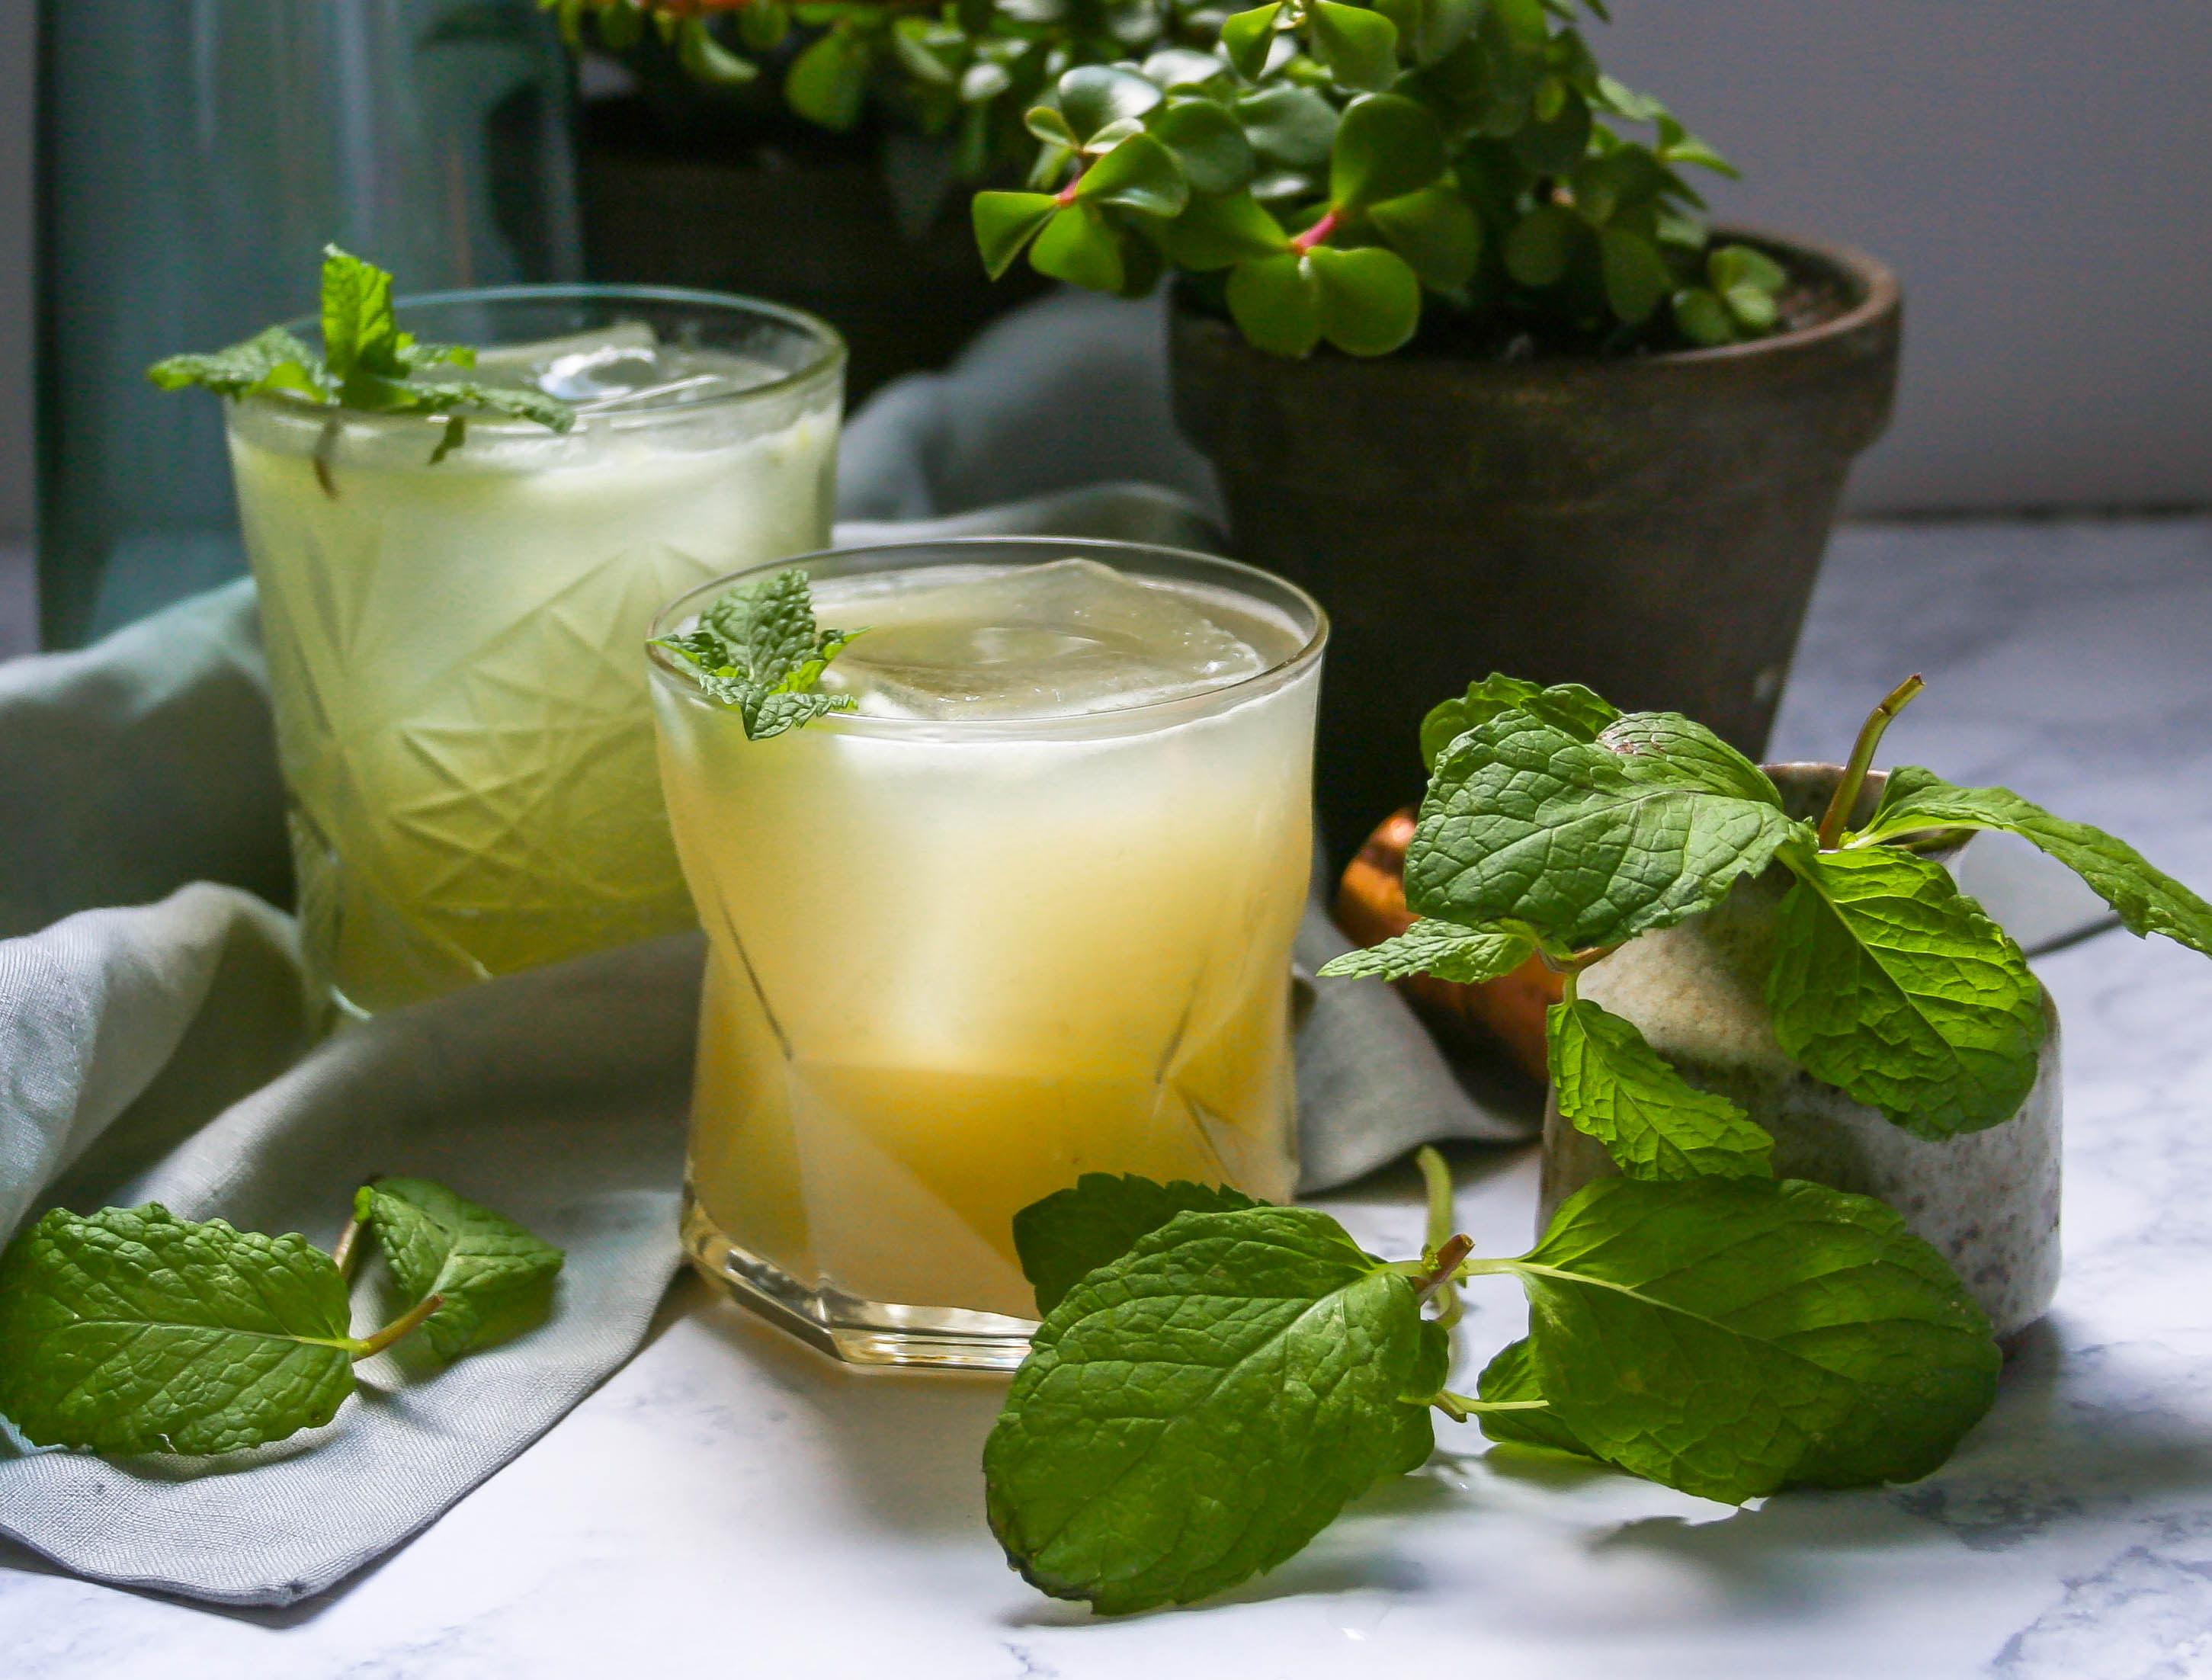 there's nothing better than bright, fresh juices mixed with a little vodka and topped with sweet ginger beer. this is the perfect cocktail for relaxing on the patio with friends, or treating yourself to your own personal oasis after a long day. spa day cocktail with grapefruit and cucumber | a flavor journal food blog